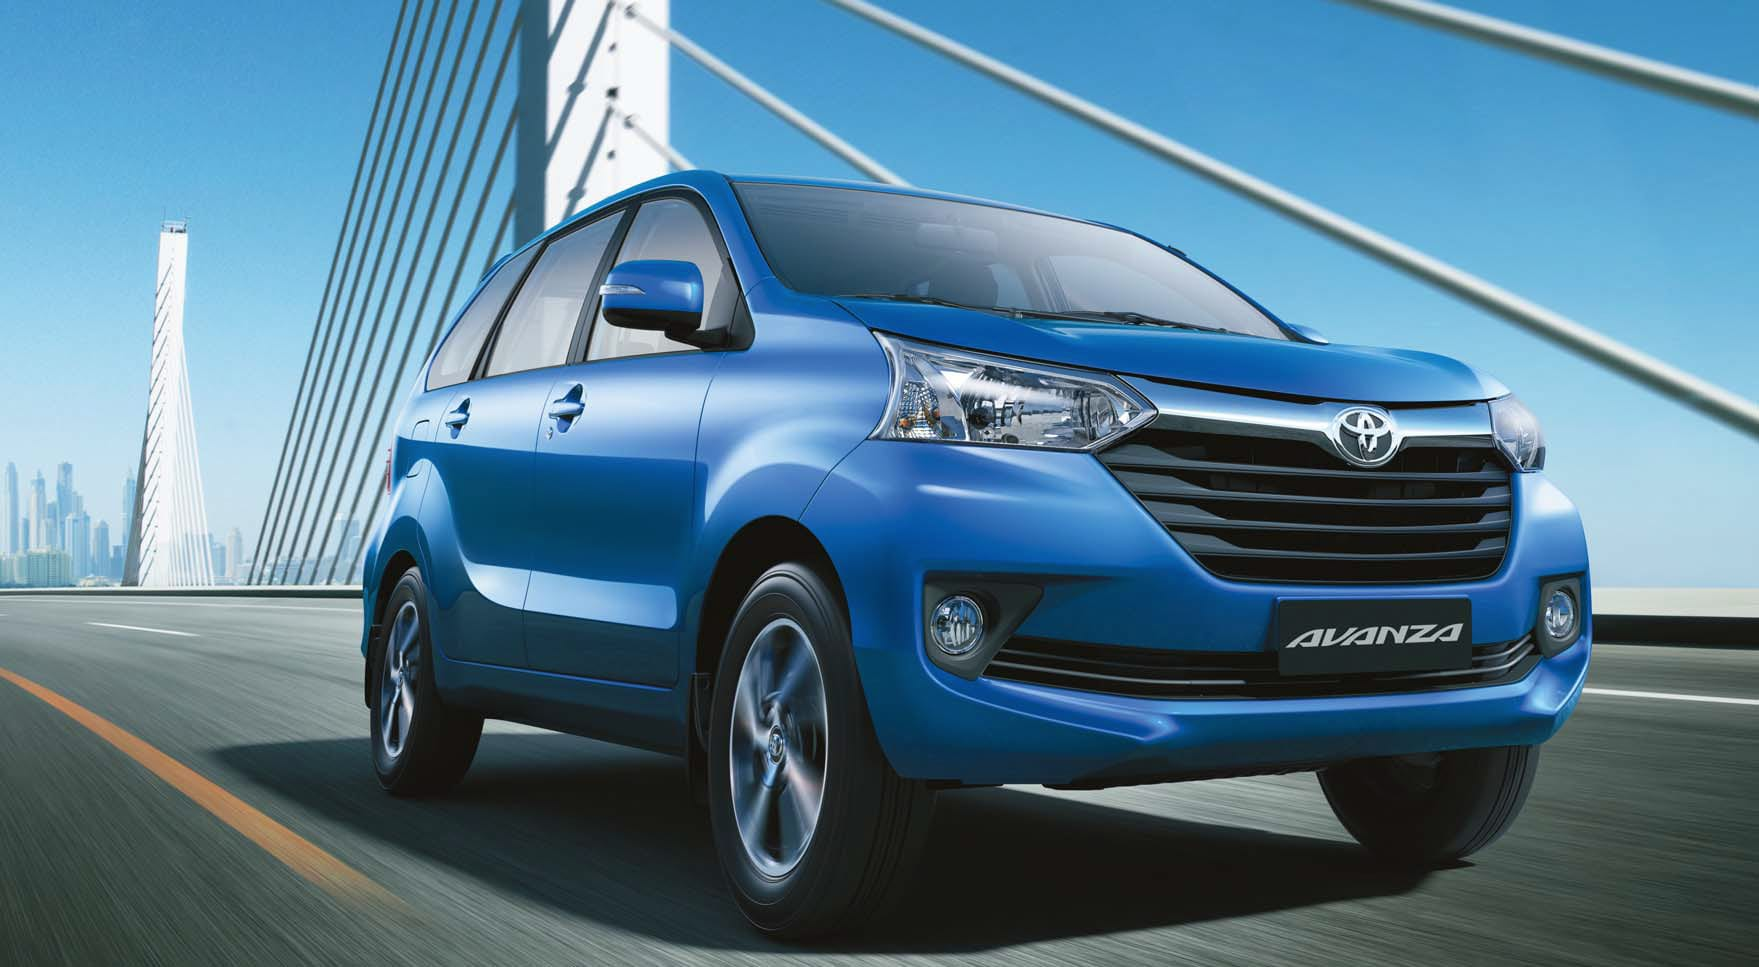 2019 Toyota Avanza Se Price In Uae Specs Amp Review In